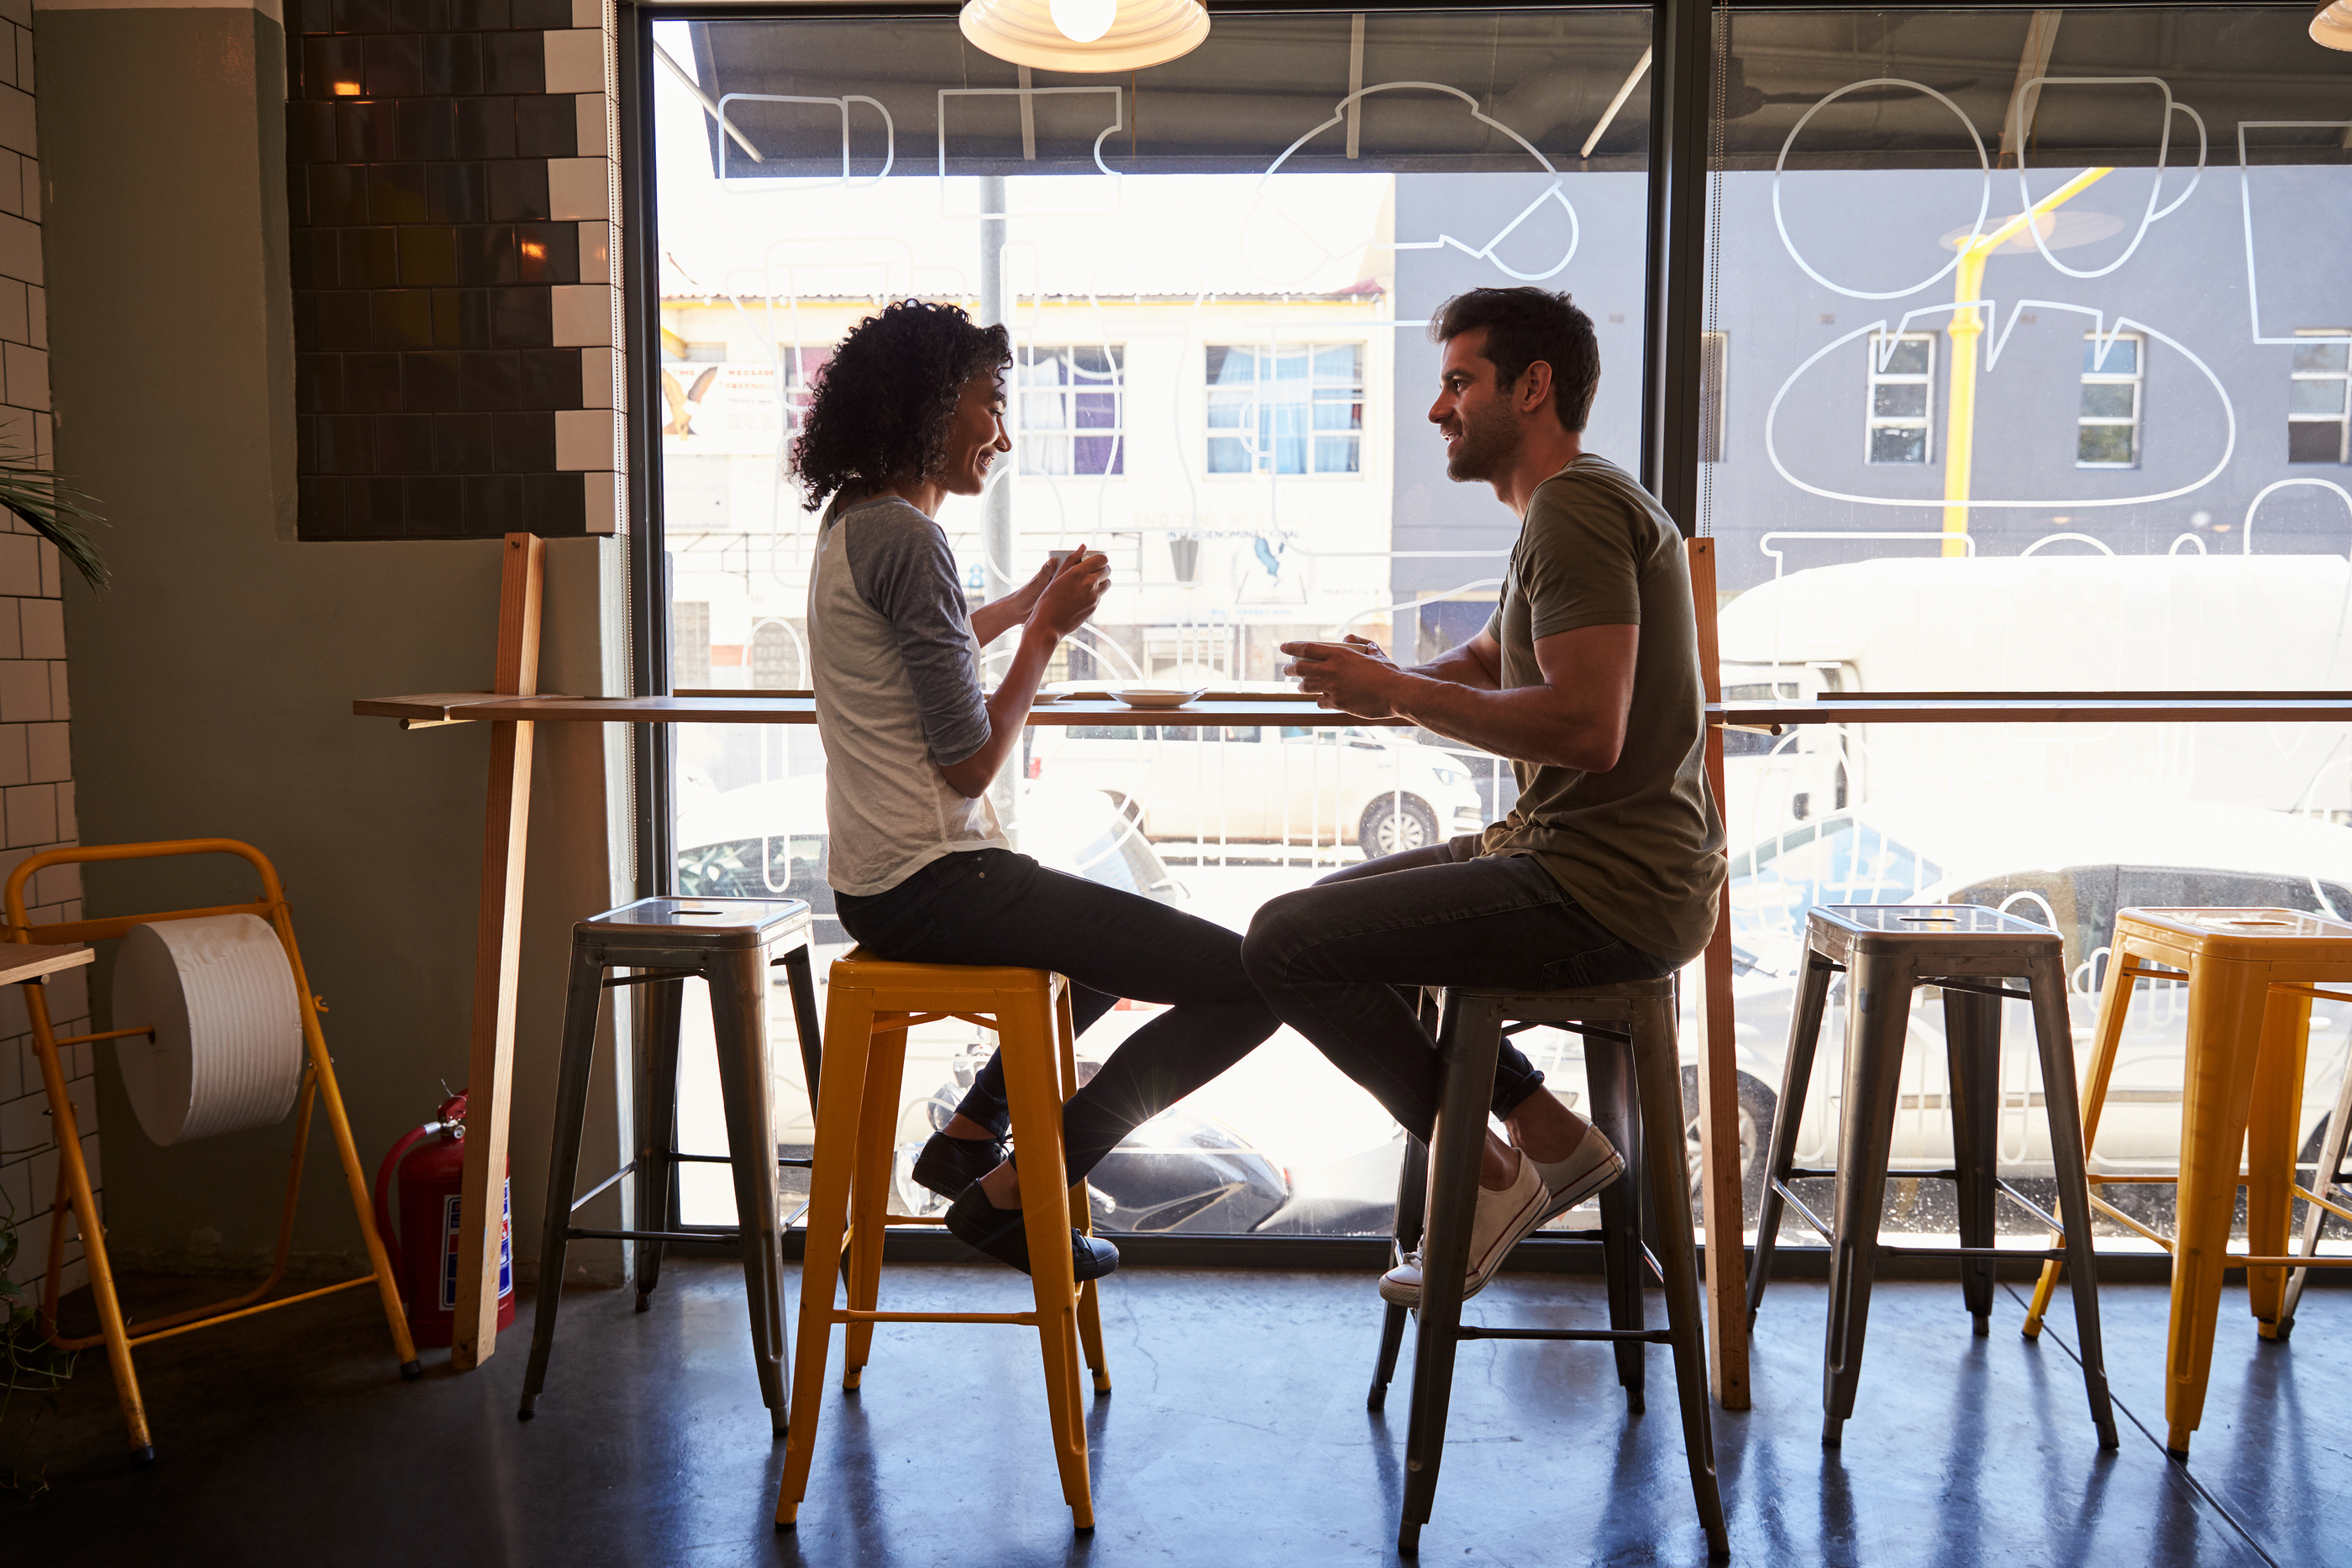 Couple Meeting For Date In Coffee Shop.jpg